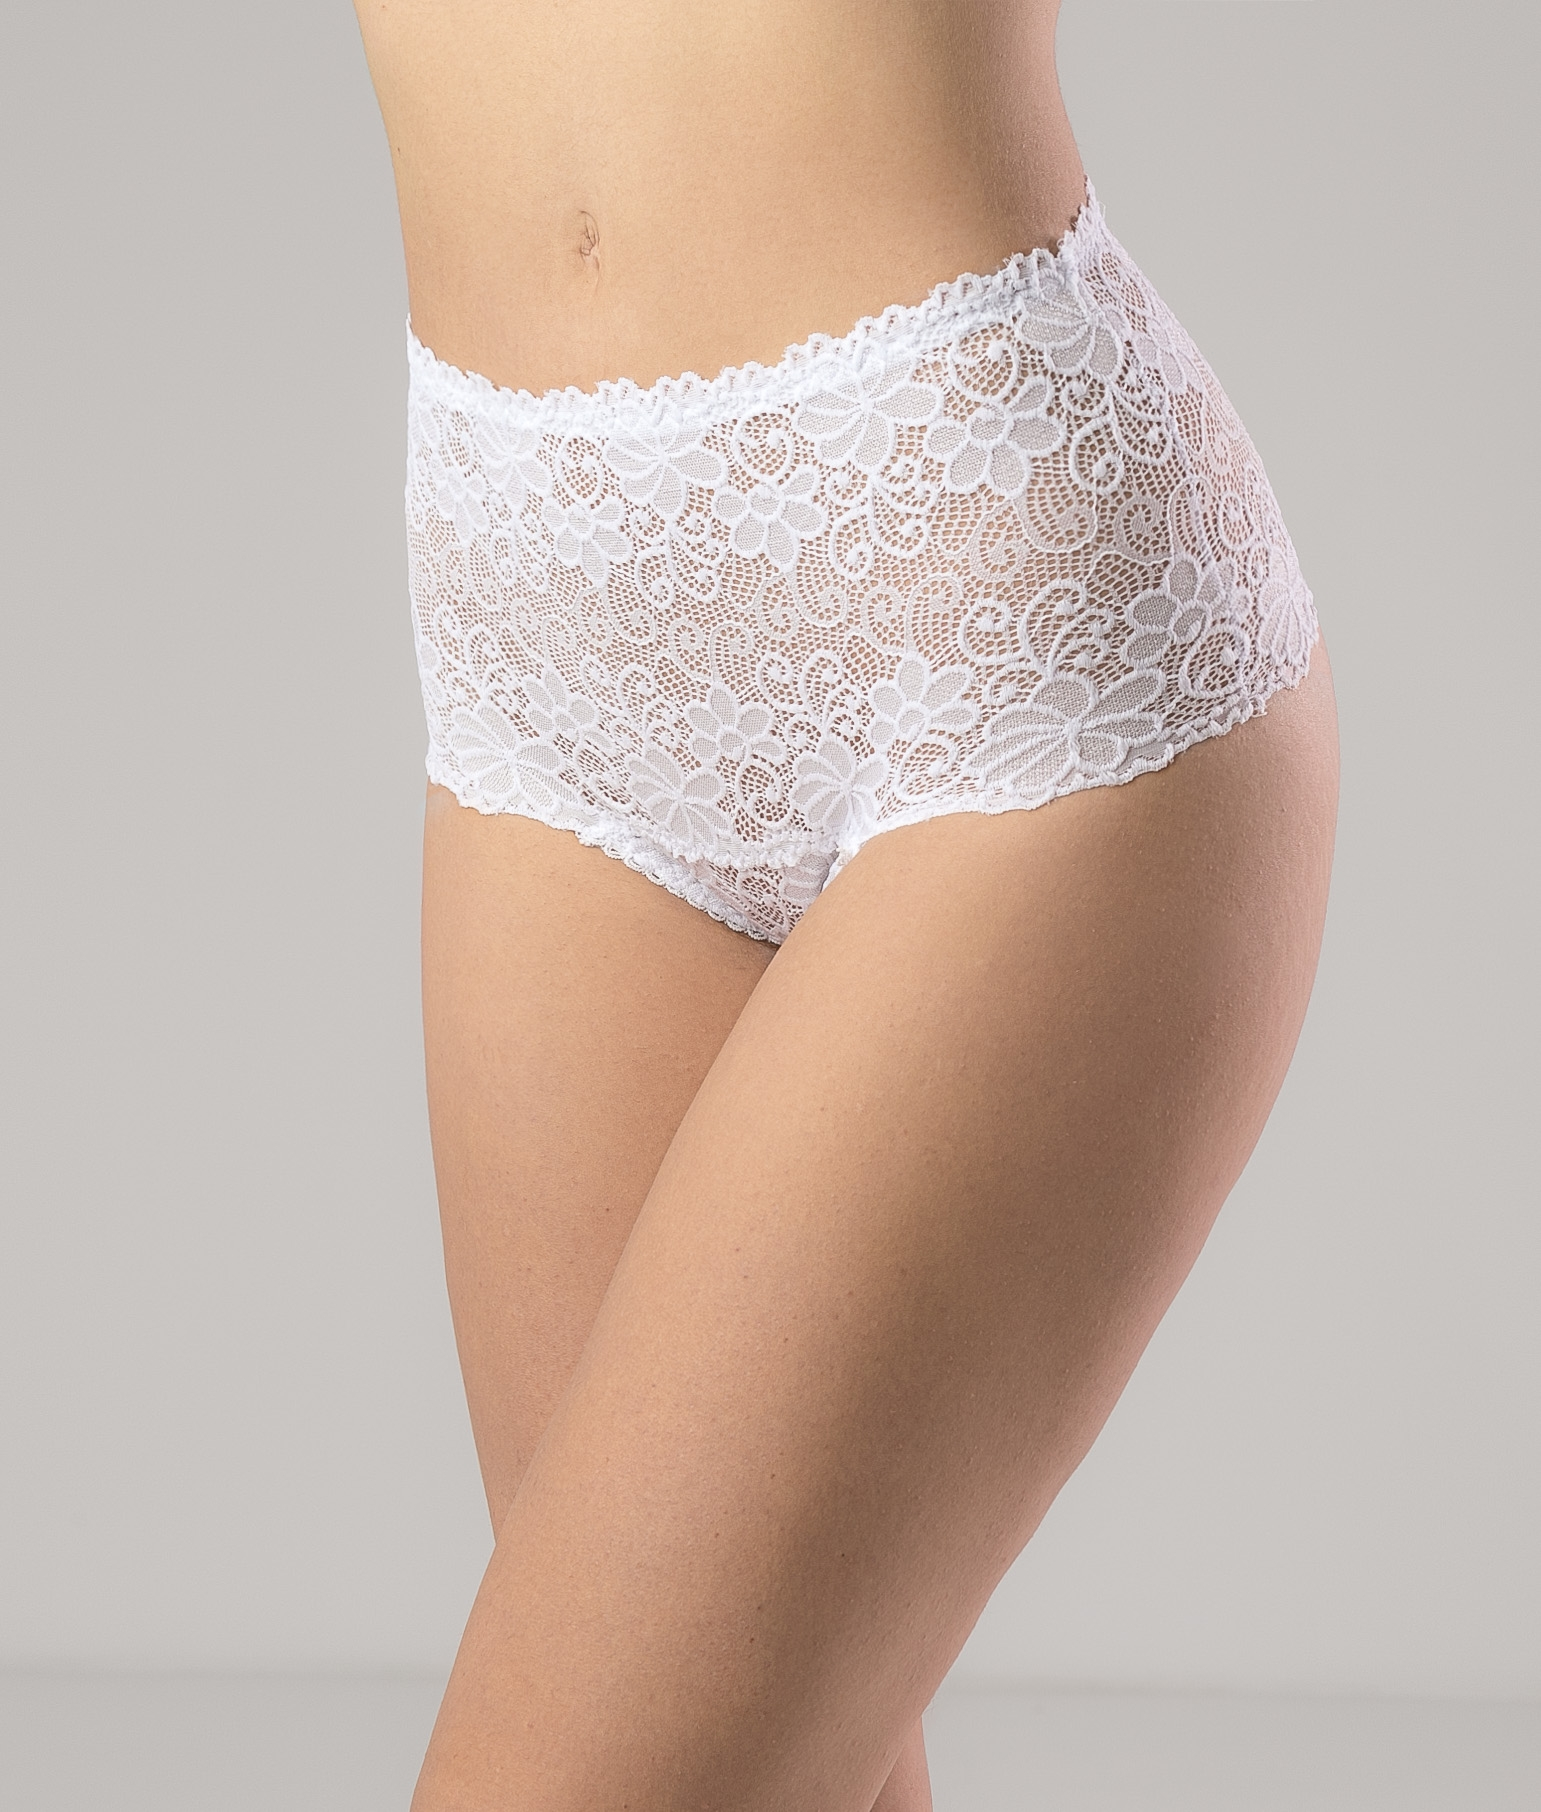 KNICKERS YINGER - WHITE